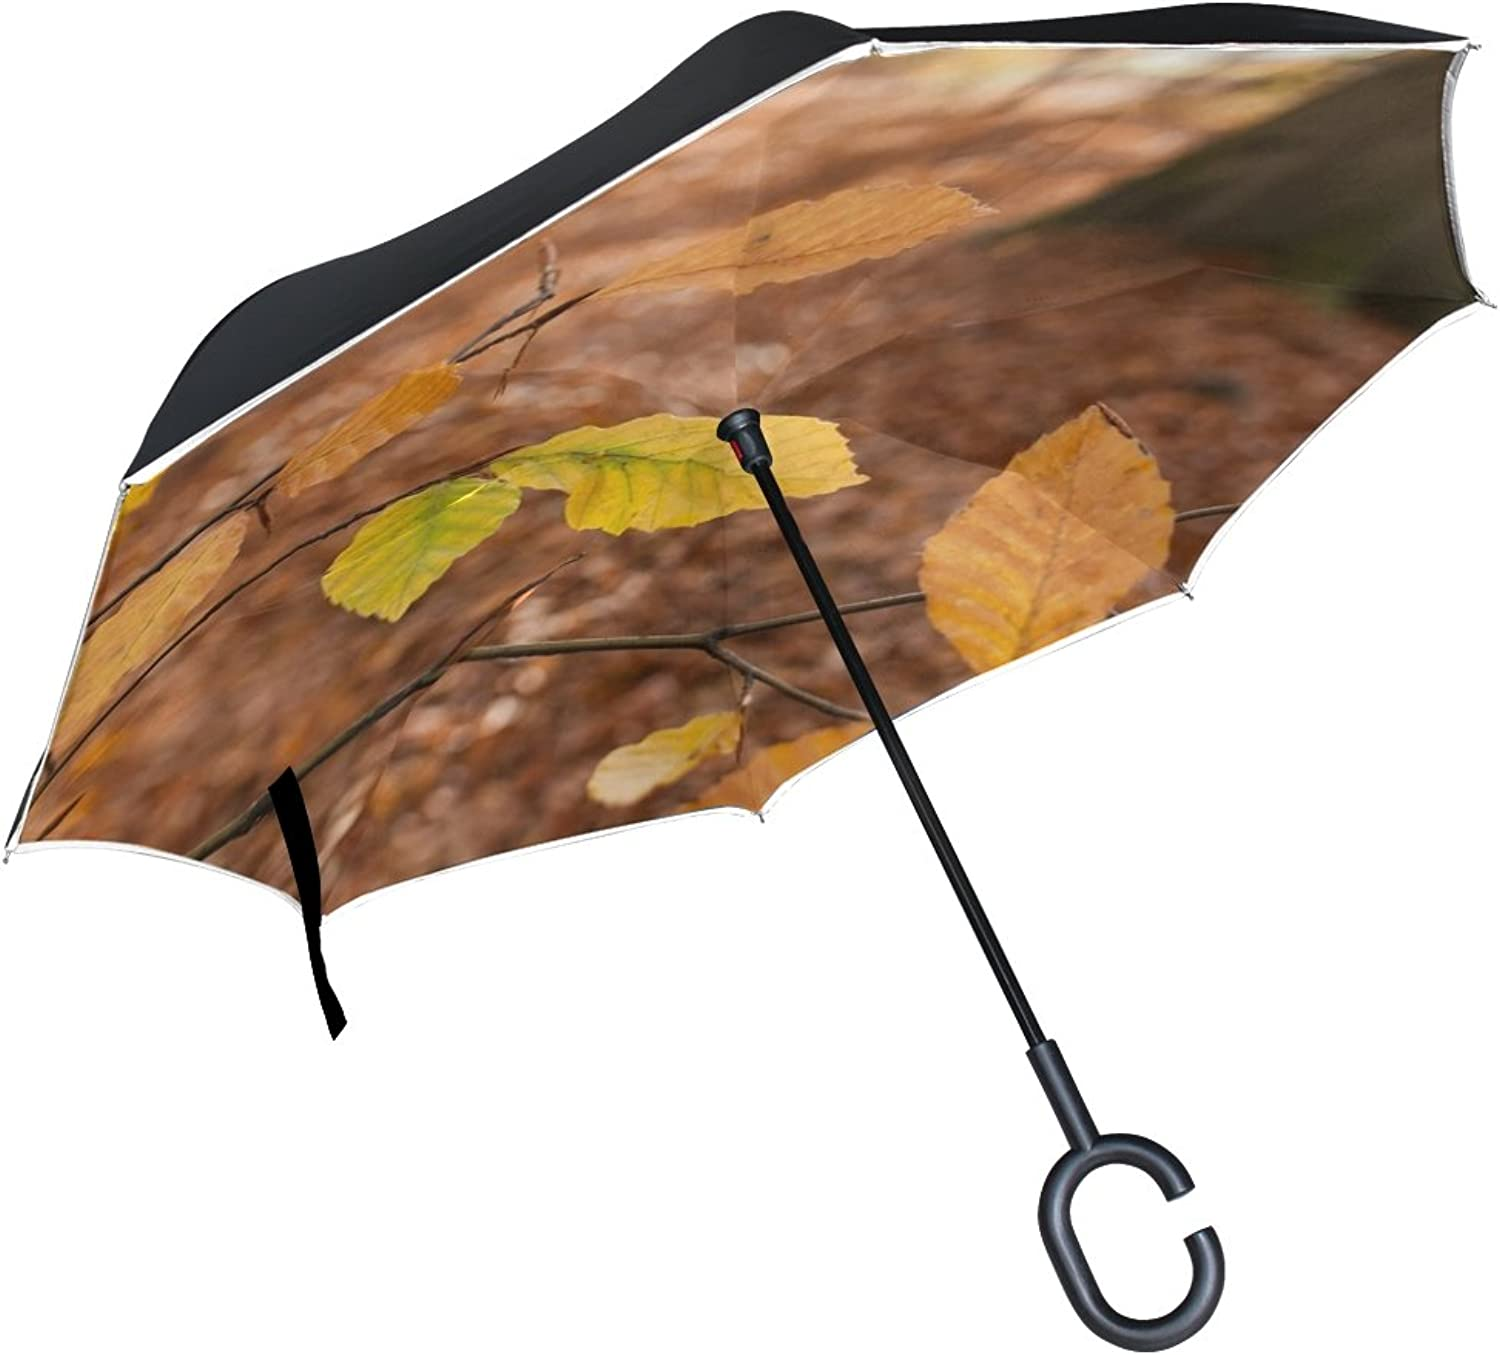 Double Layer Ingreened Autumn Leaves Beech Forest Emerge October Umbrellas Reverse Folding Umbrella Windproof Uv Predection Big Straight Umbrella for Car Rain Outdoor with CShaped Handle